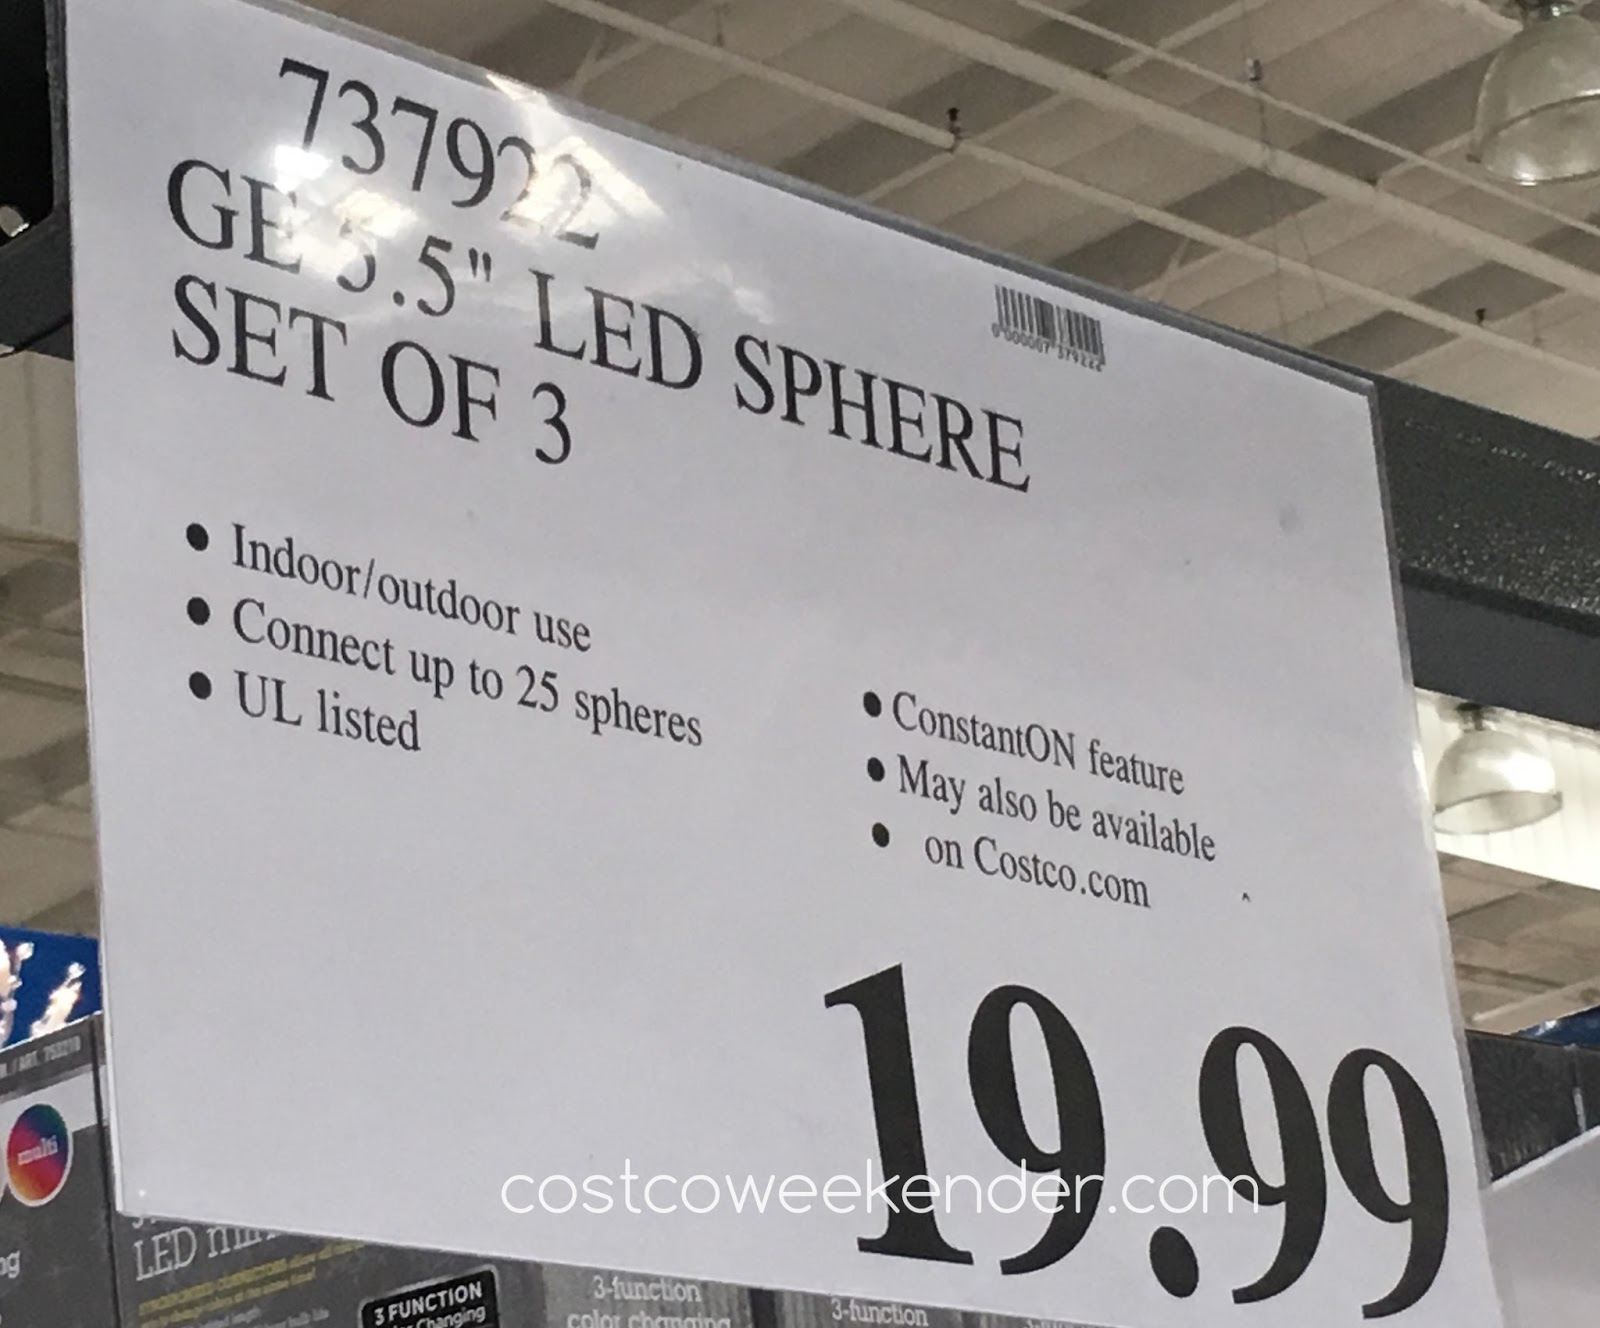 Costco 737922 - Deal for a set of 3 GE LED Spheres at Costco